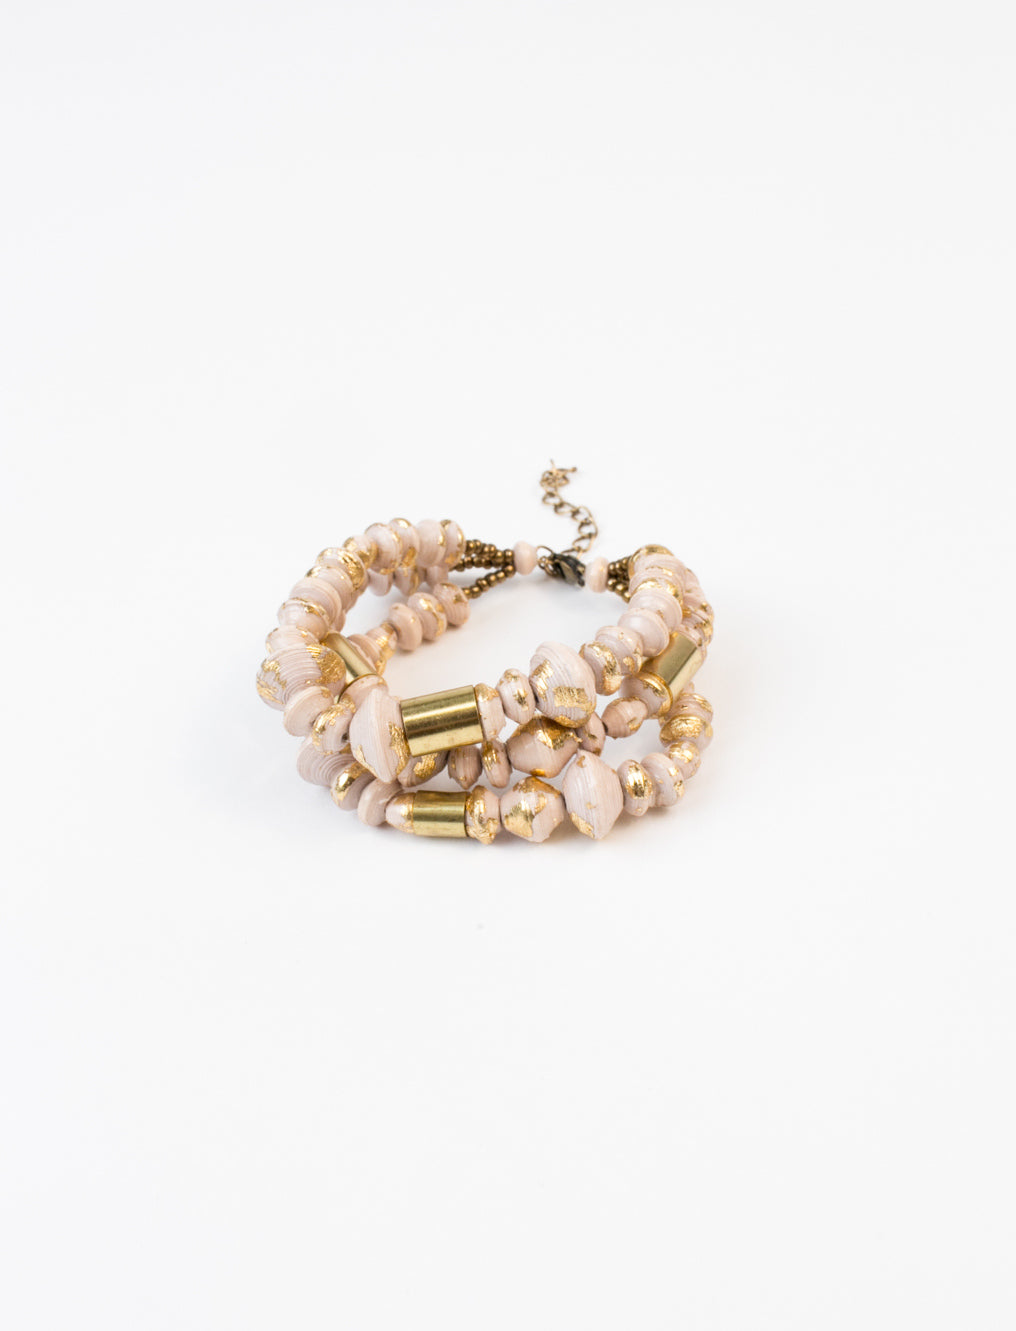 Marble Strand Bracelet in Cream and Gold